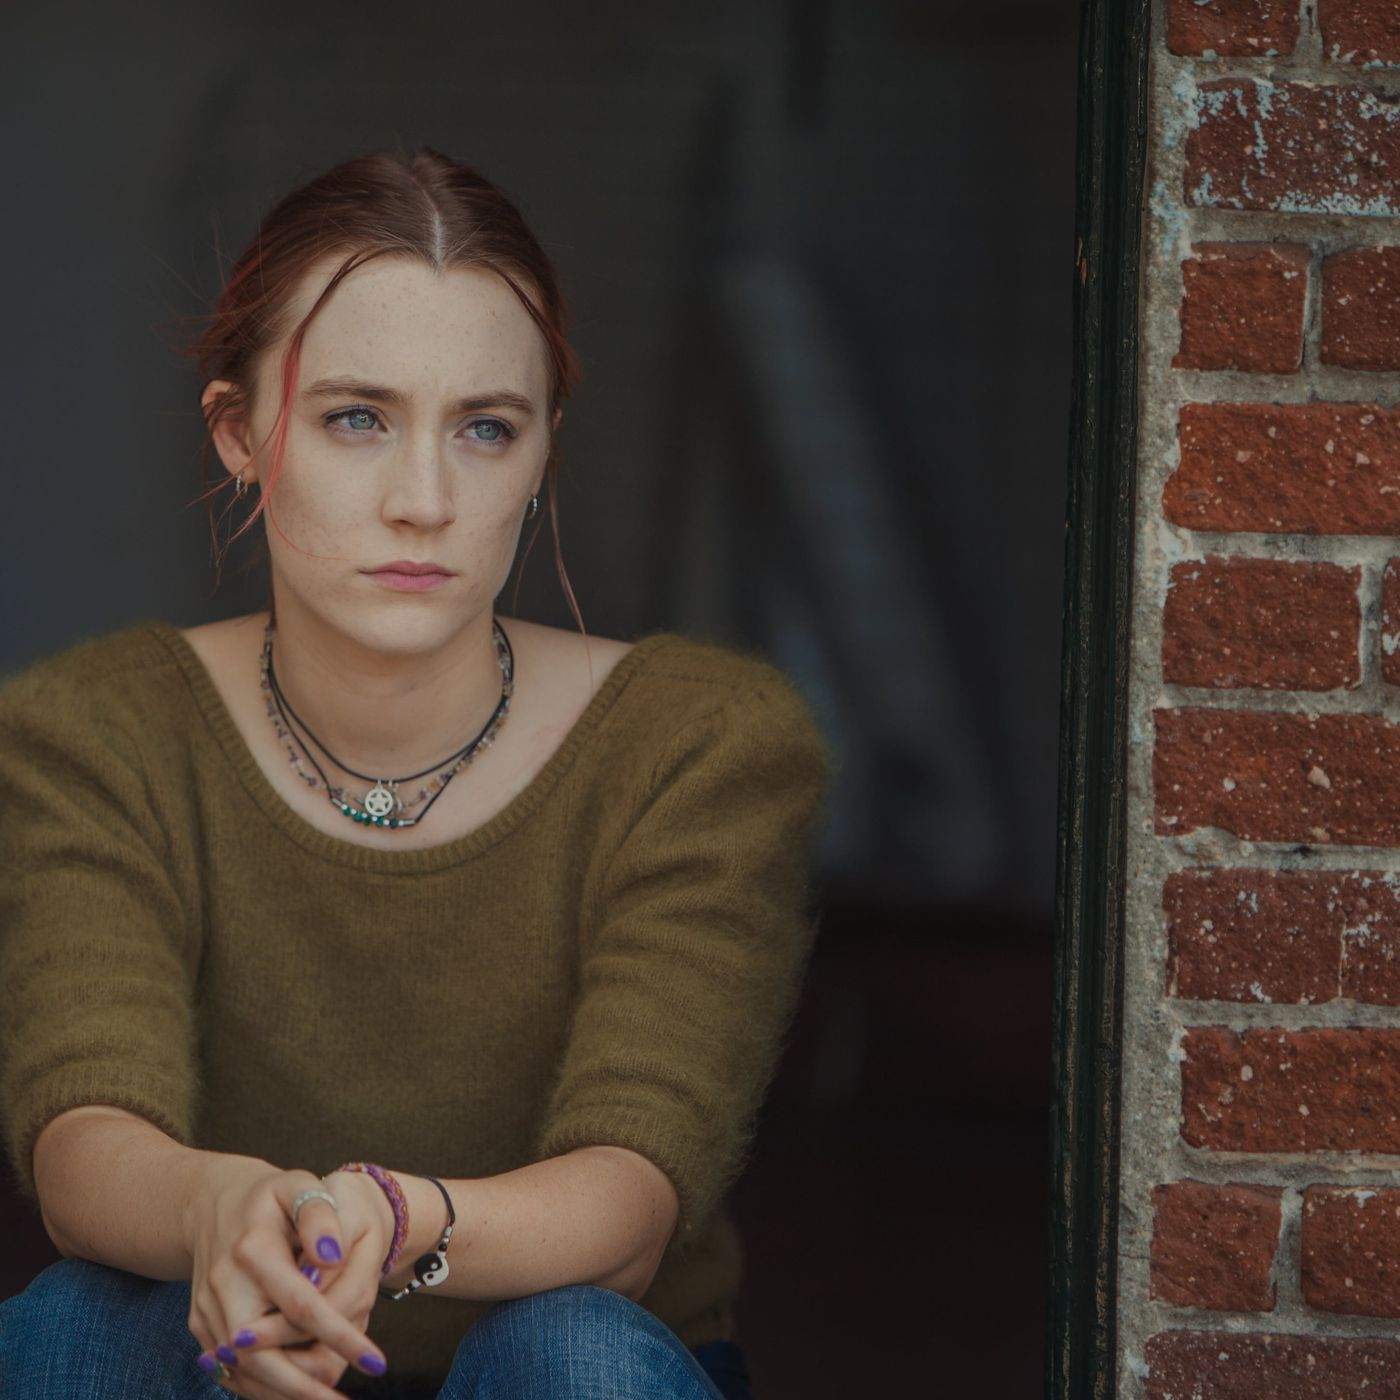 Bedroom Eyes Full Movie 2017 lady bird review: greta gerwig's coming-of-age comedy is the